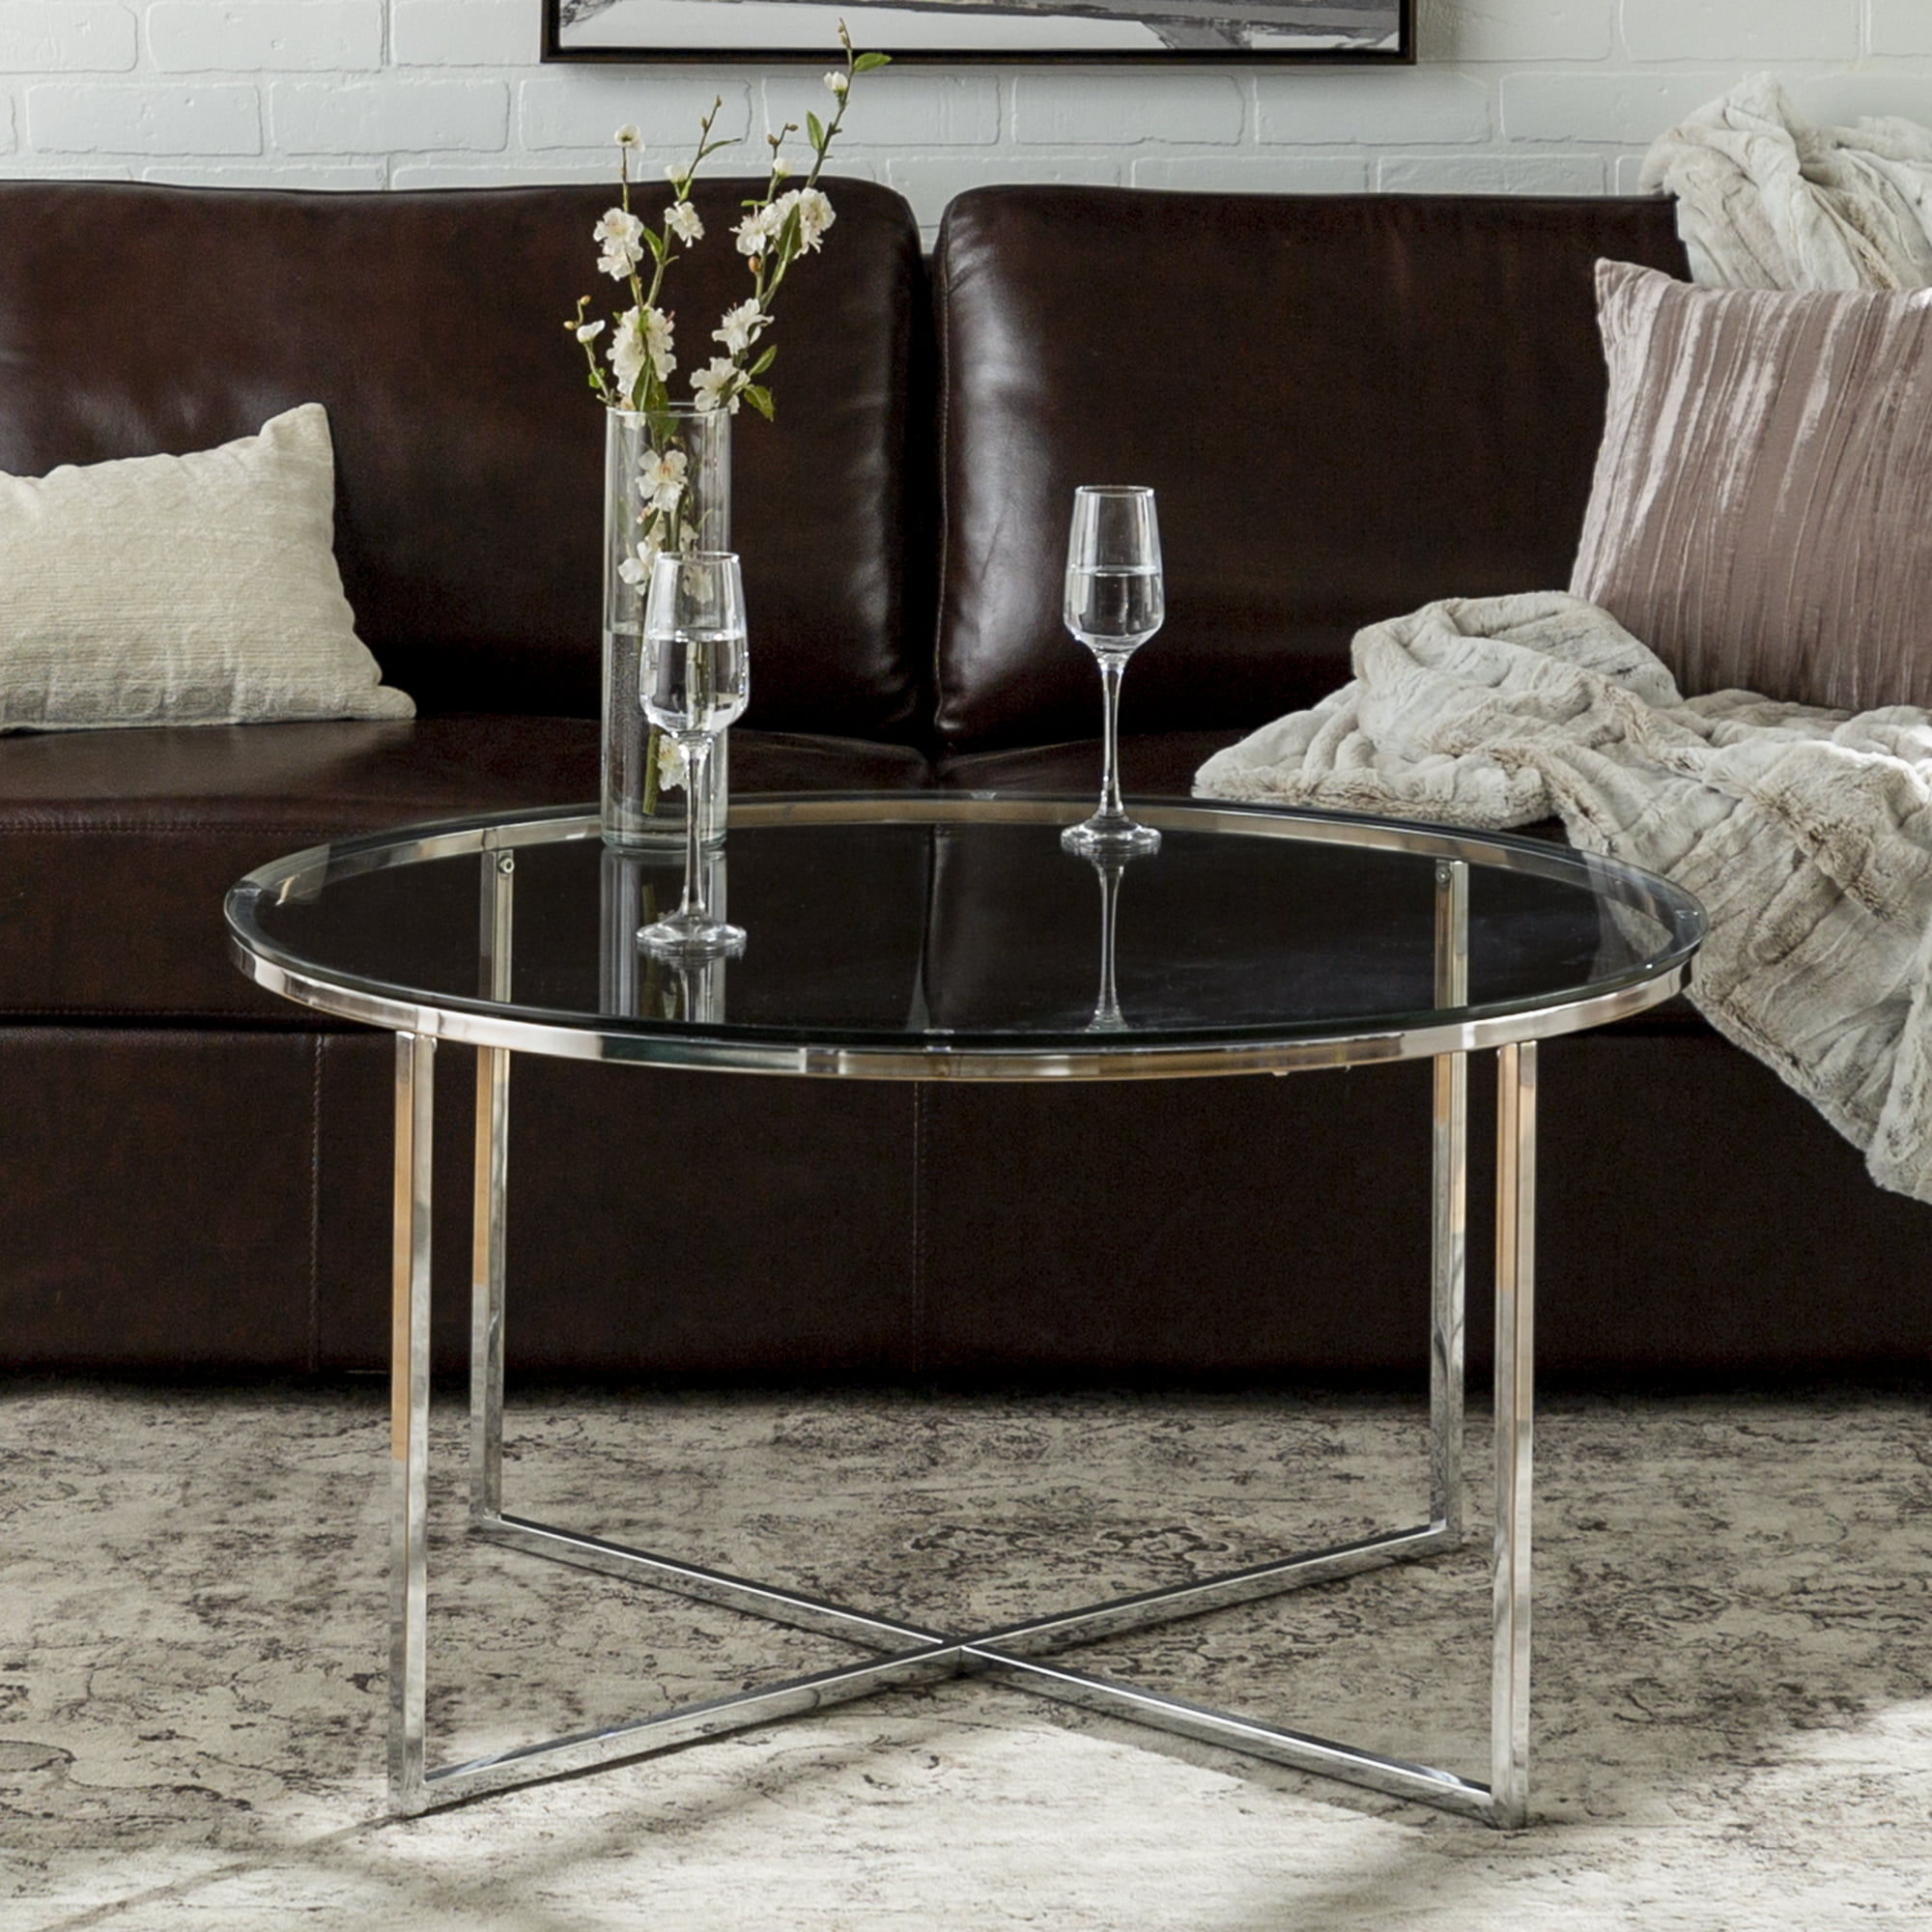 7bb5f630a0e23 Manor Park Mid Century Modern Round Coffee Table - White Marble Gold -  Walmart.com